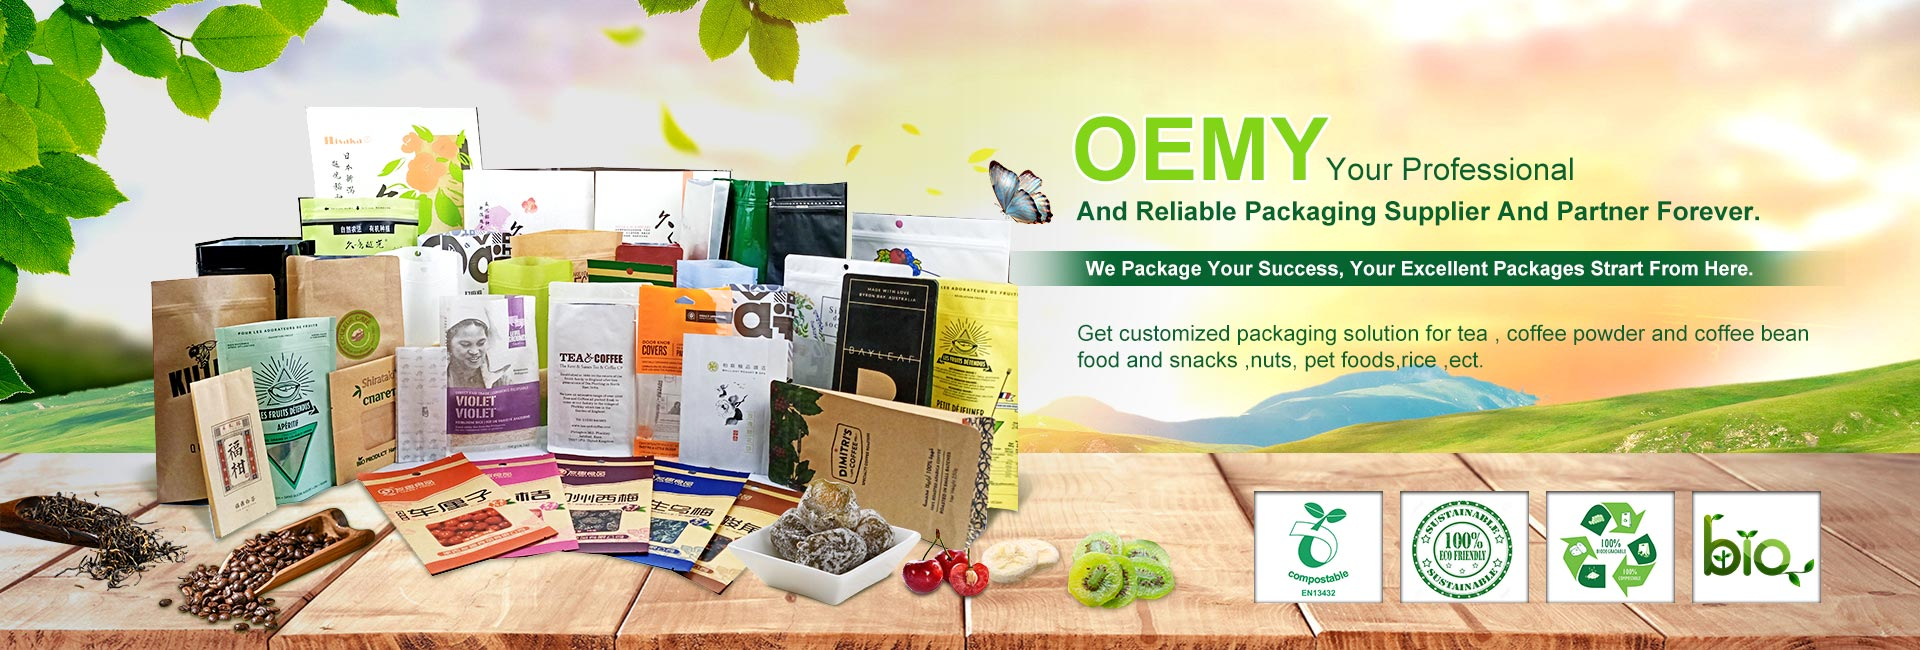 OEMY Your Professional  And Reliable Packaging Supplier And Partner Forever.